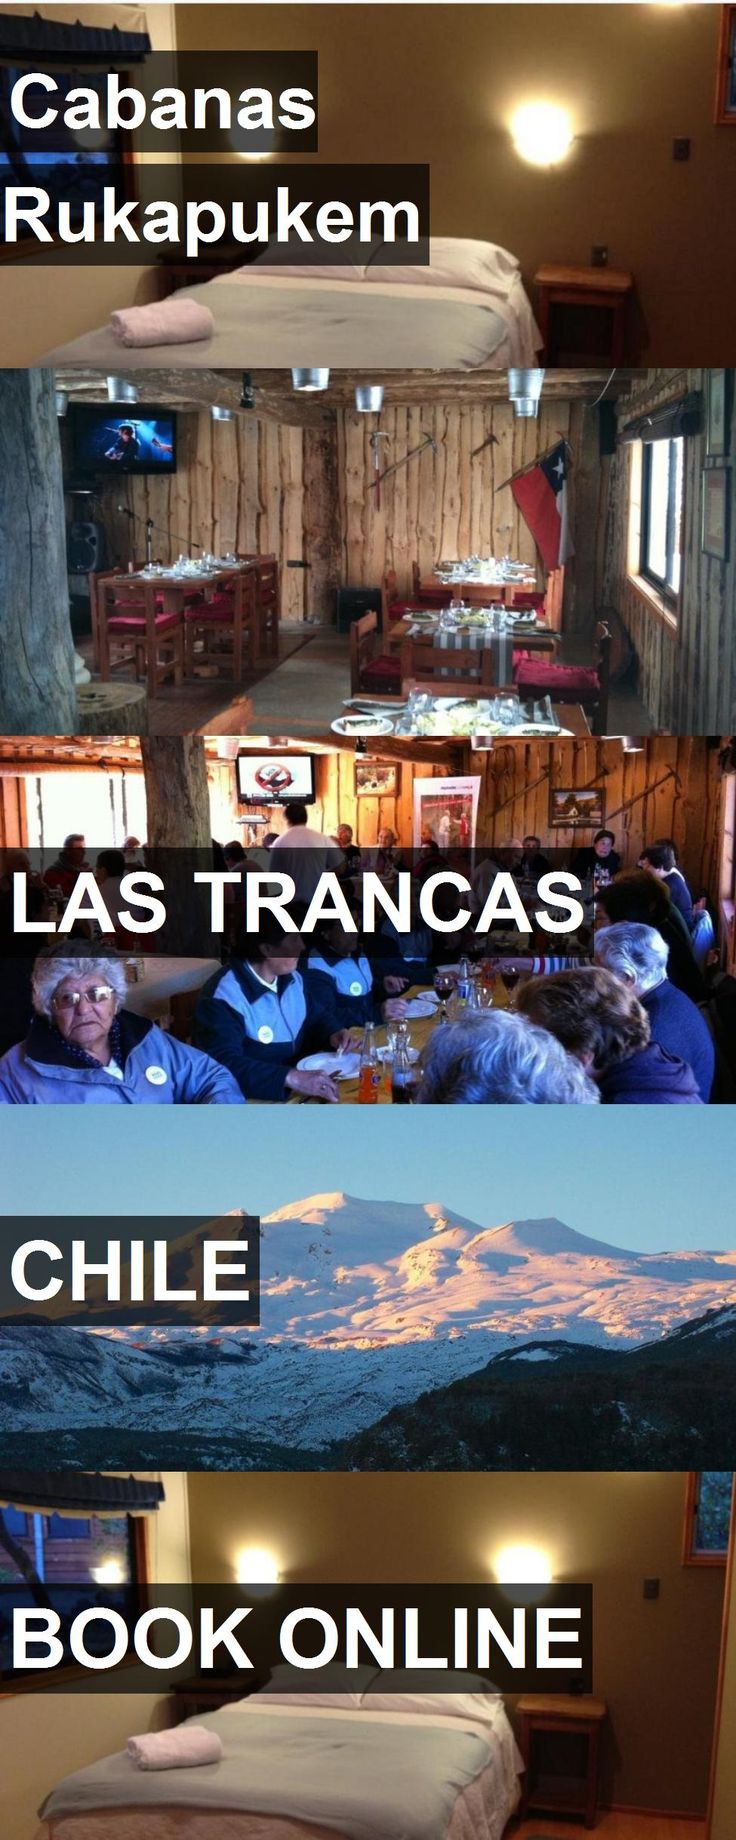 Hotel Cabanas Rukapukem in Las Trancas, Chile. For more information, photos, reviews and best prices please follow the link. #Chile #LasTrancas #travel #vacation #hotel